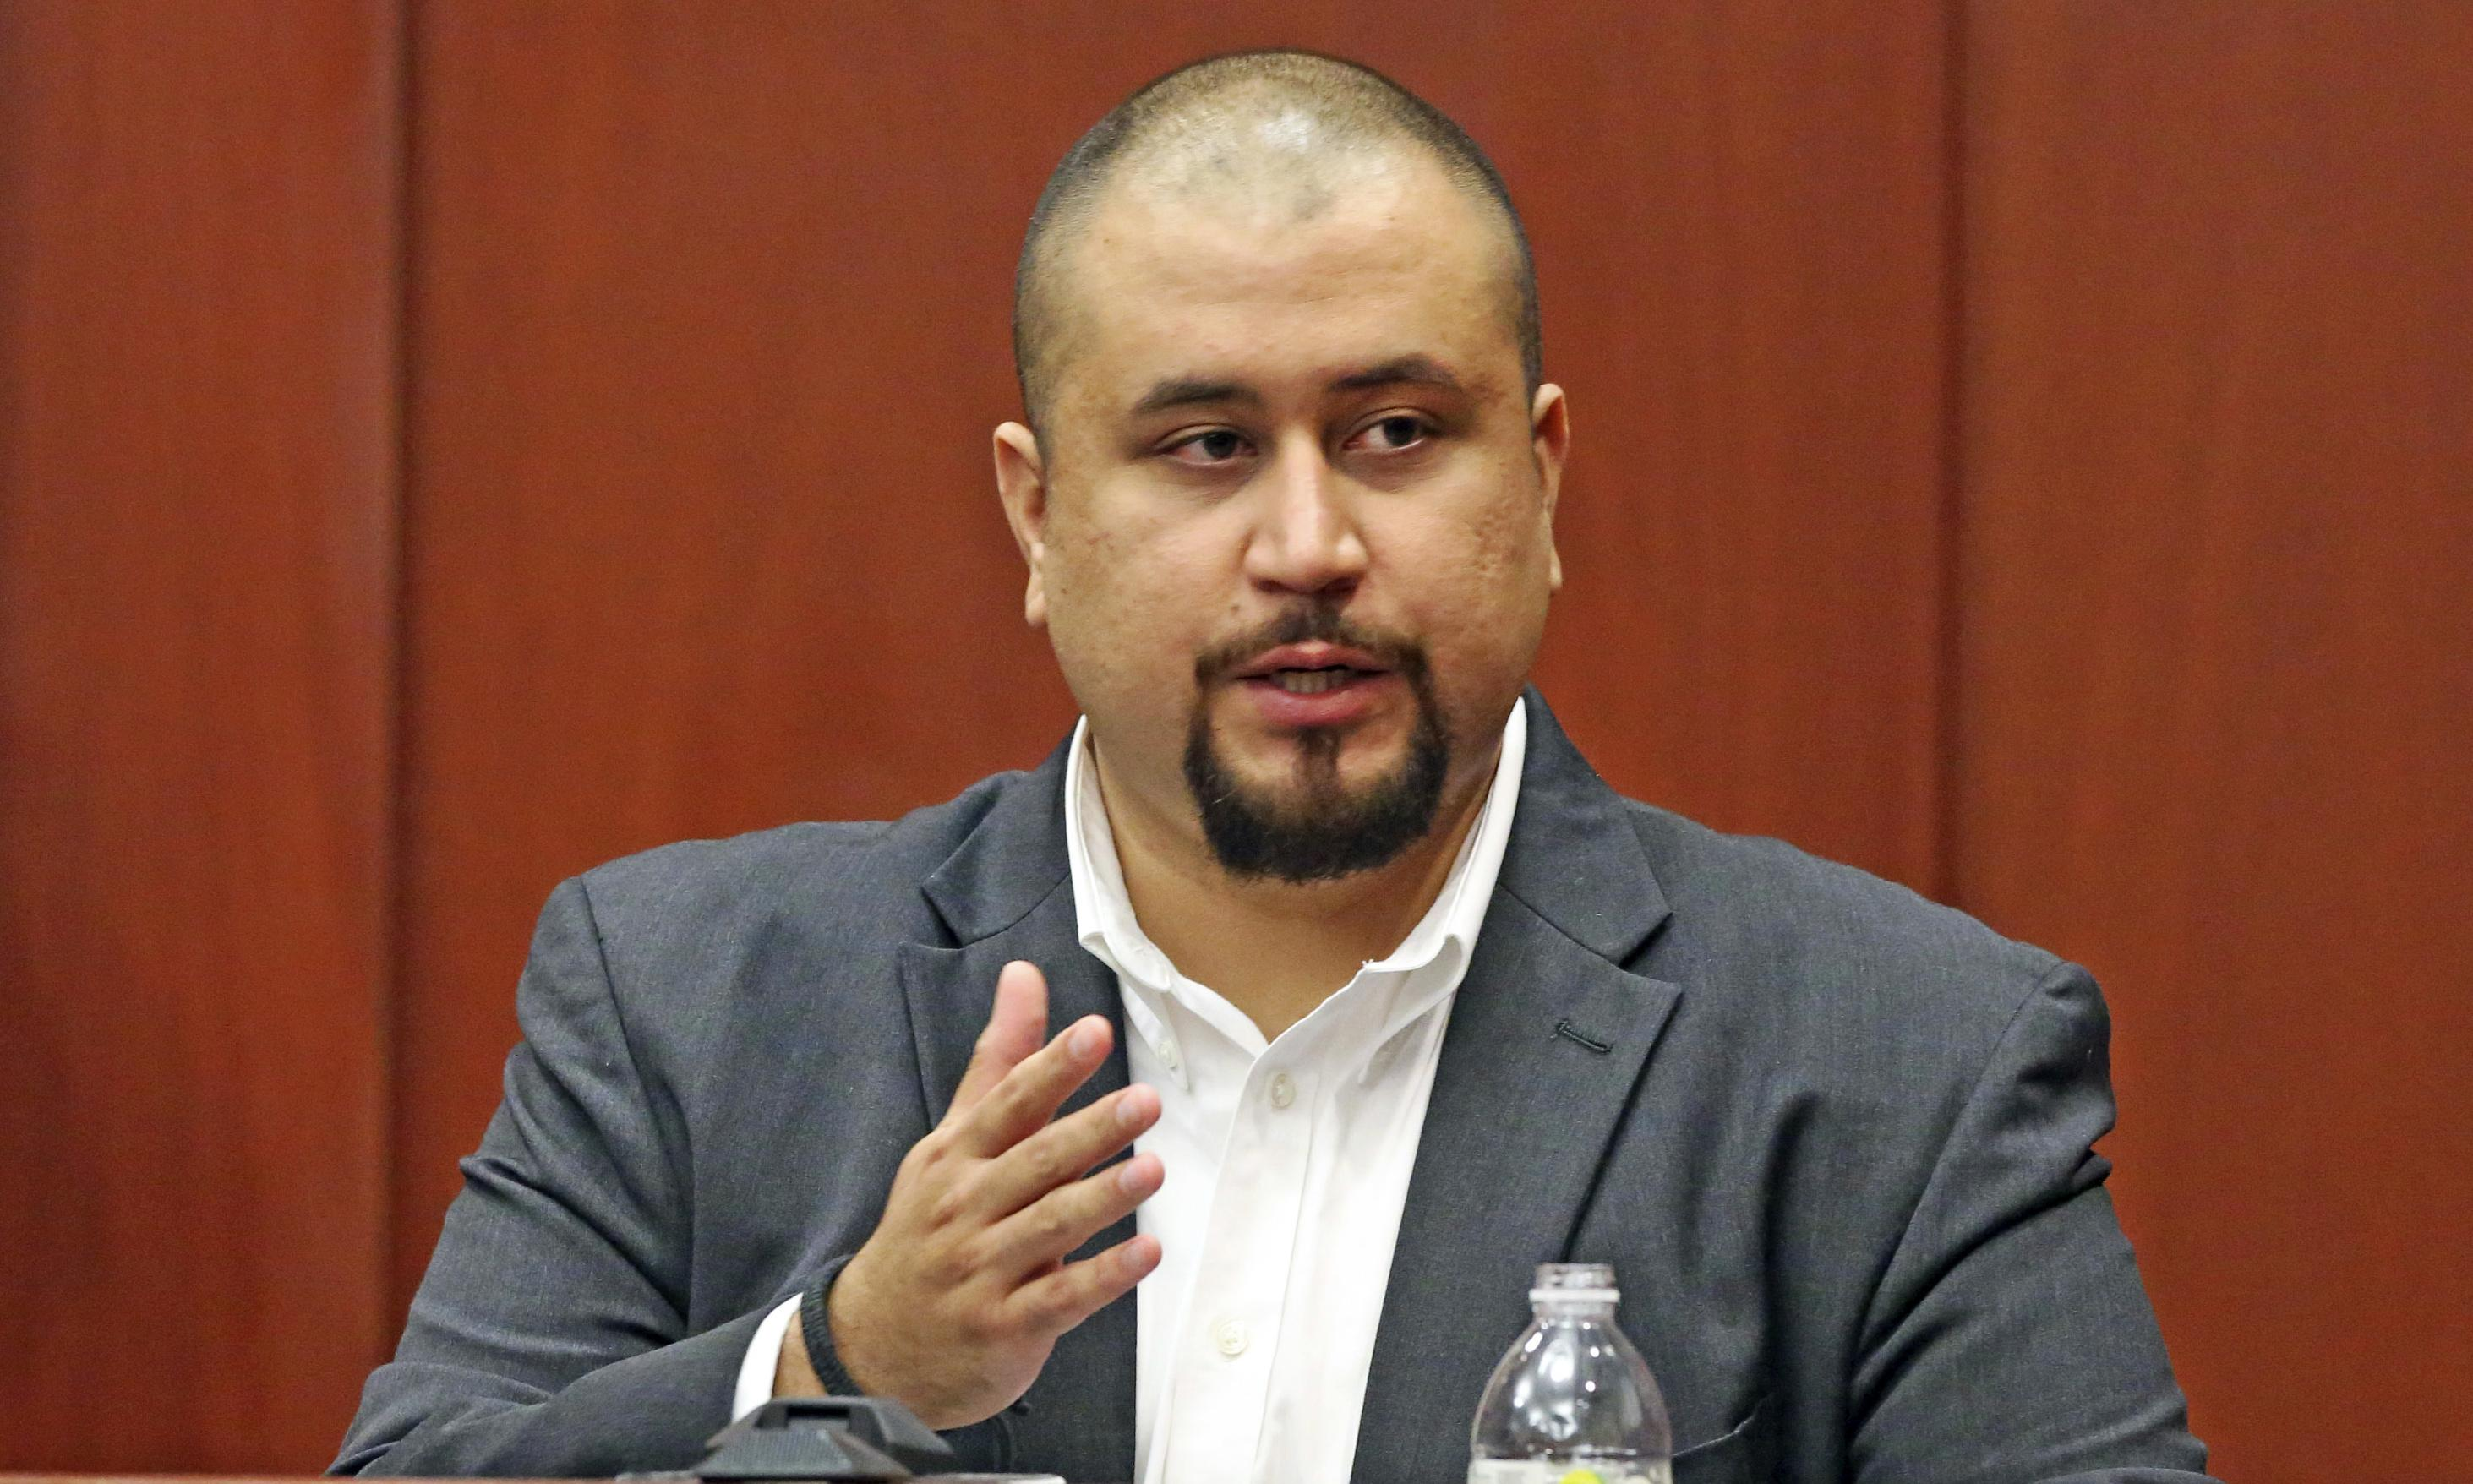 George Zimmerman sues Trayvon Martin's family for $100m